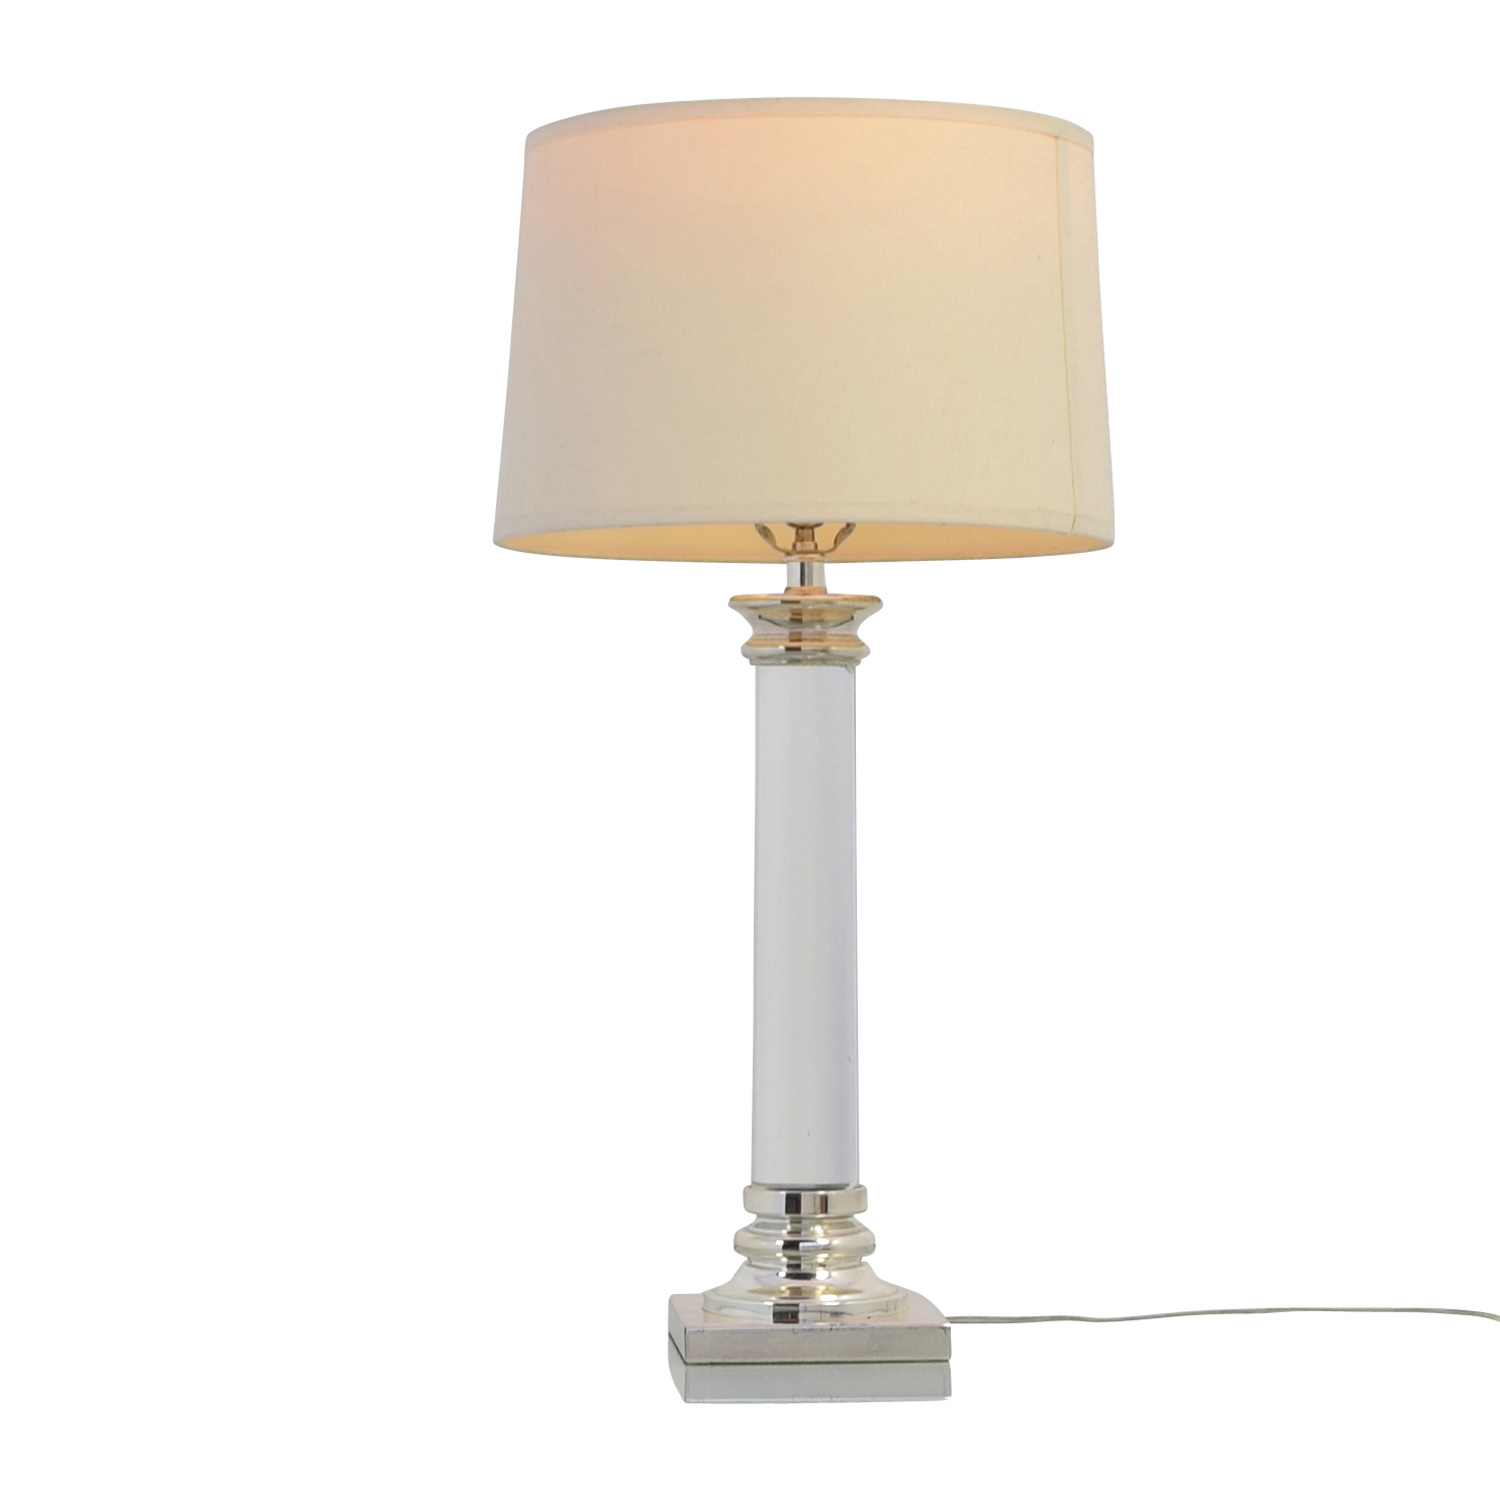 Restoration Hardware Restoration Hardware Glass Bedside Table Lamps coupon